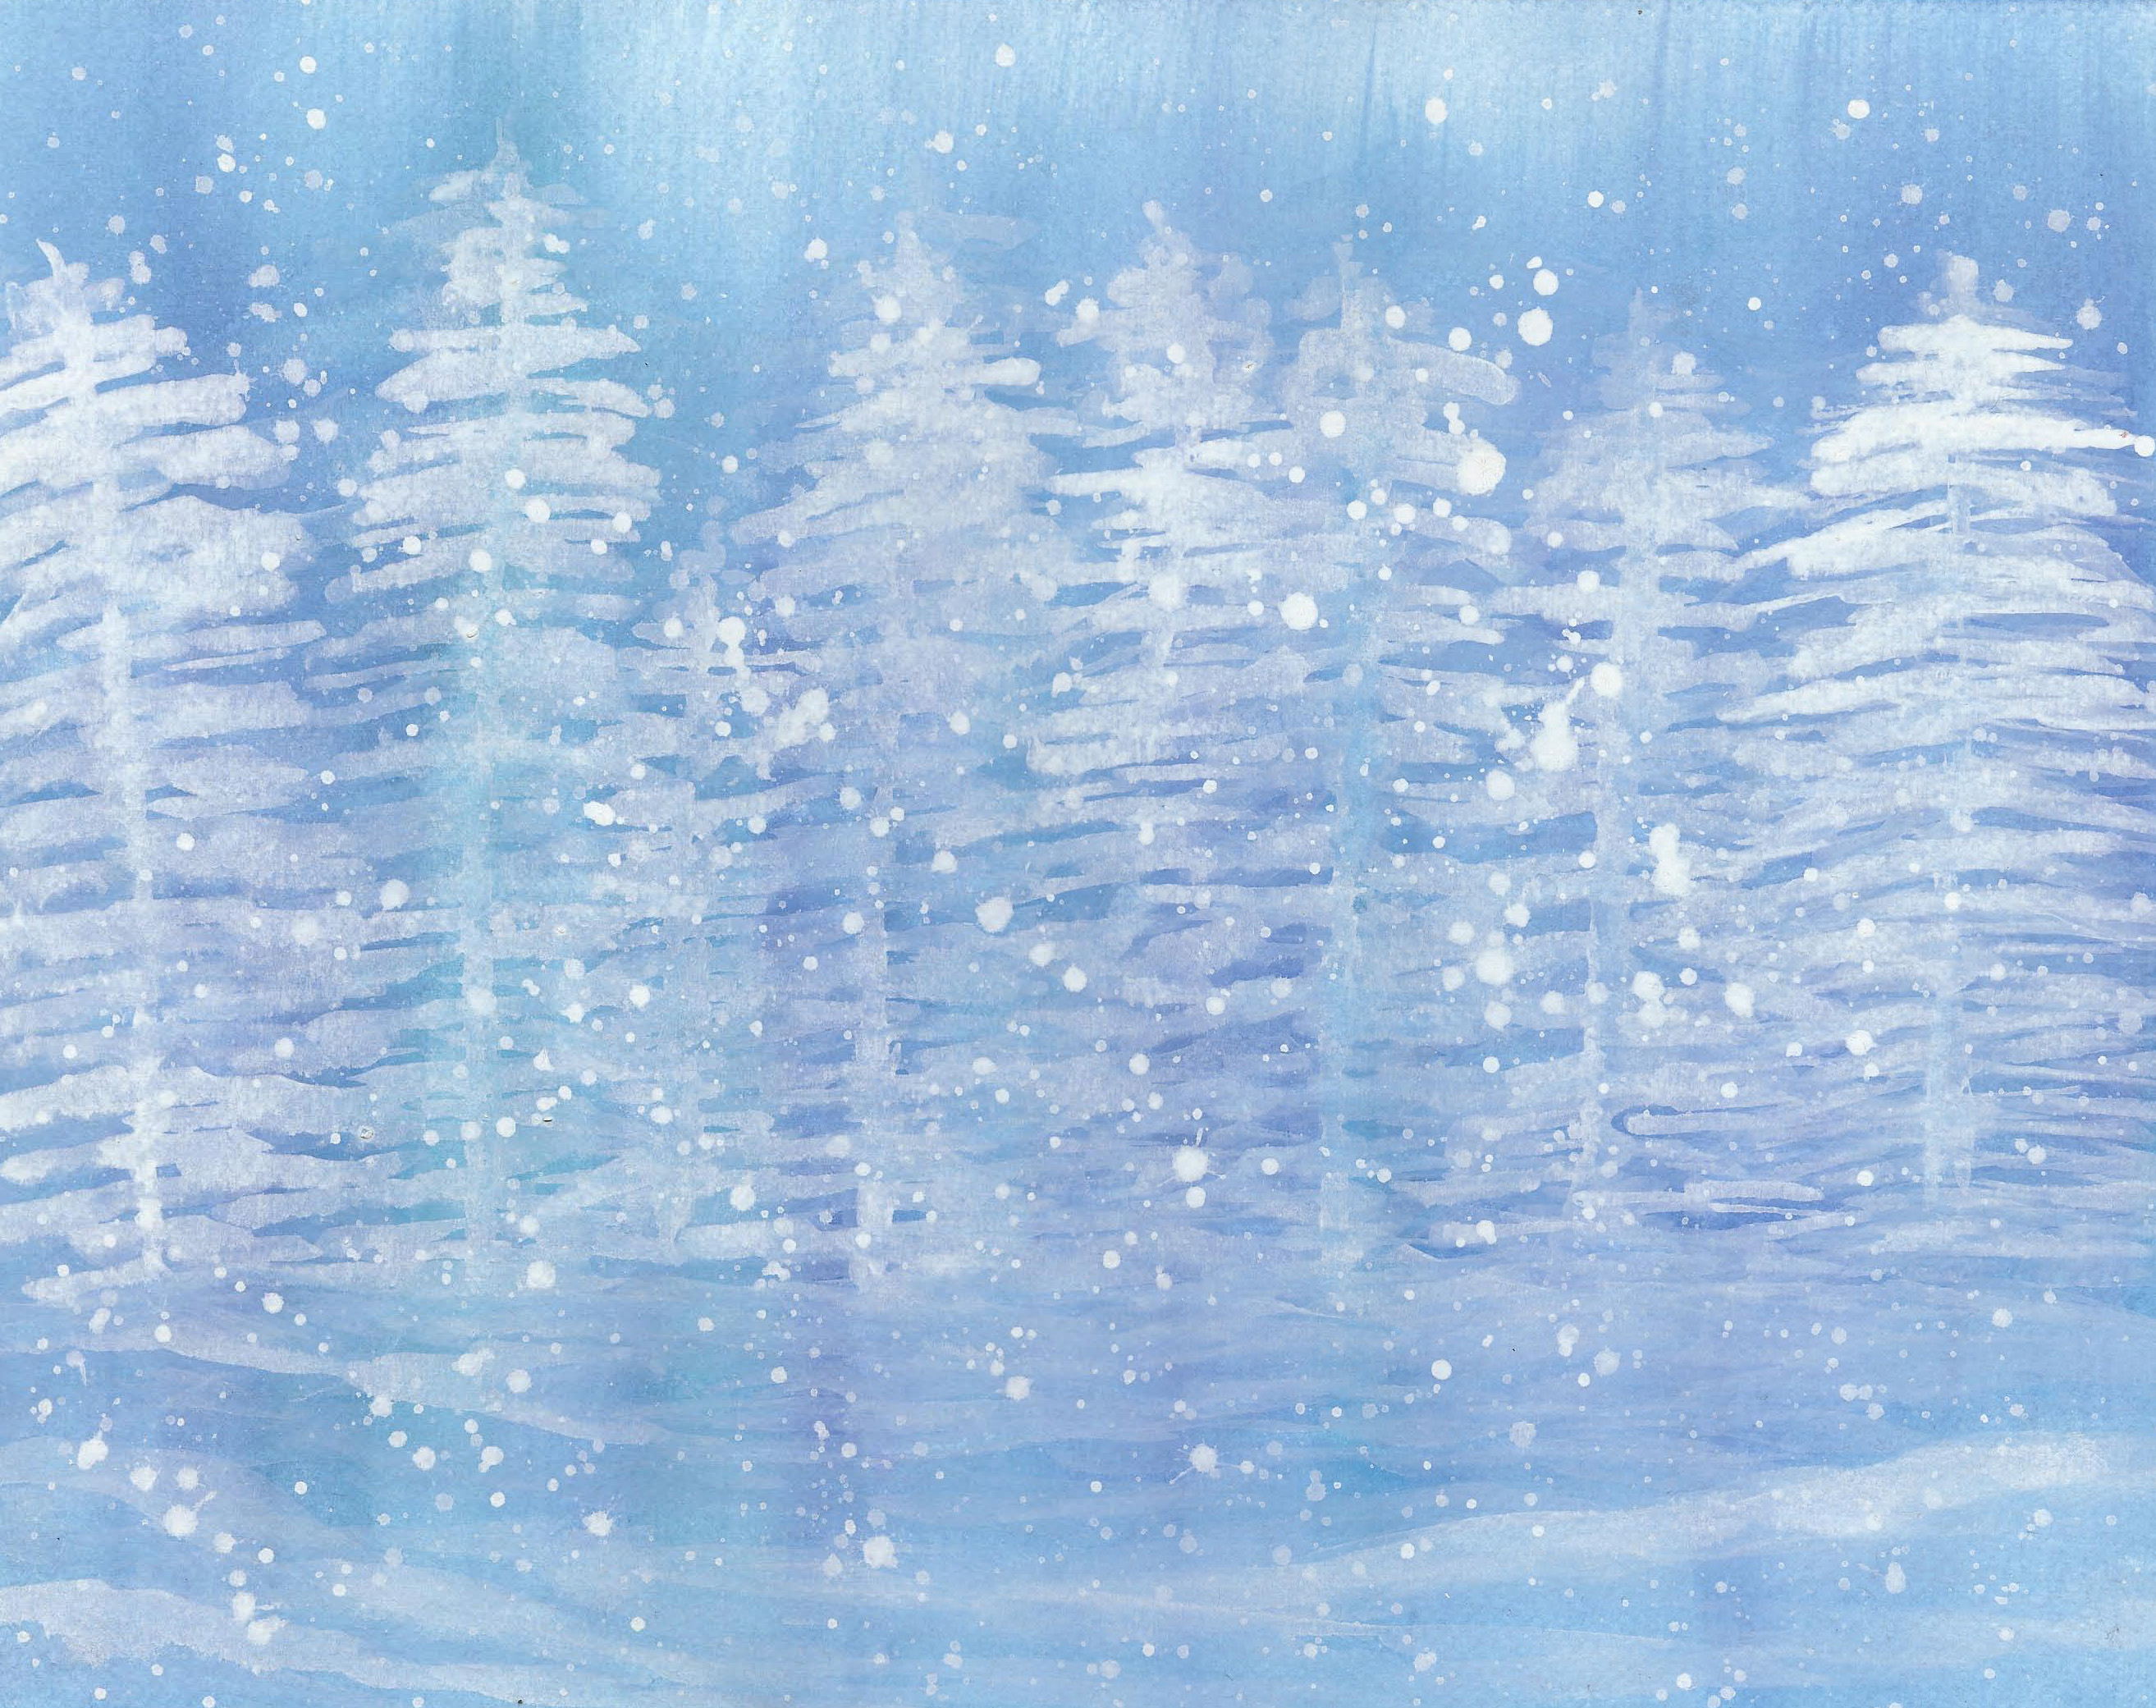 Snowy - Watercolor 11 X 14 - $125